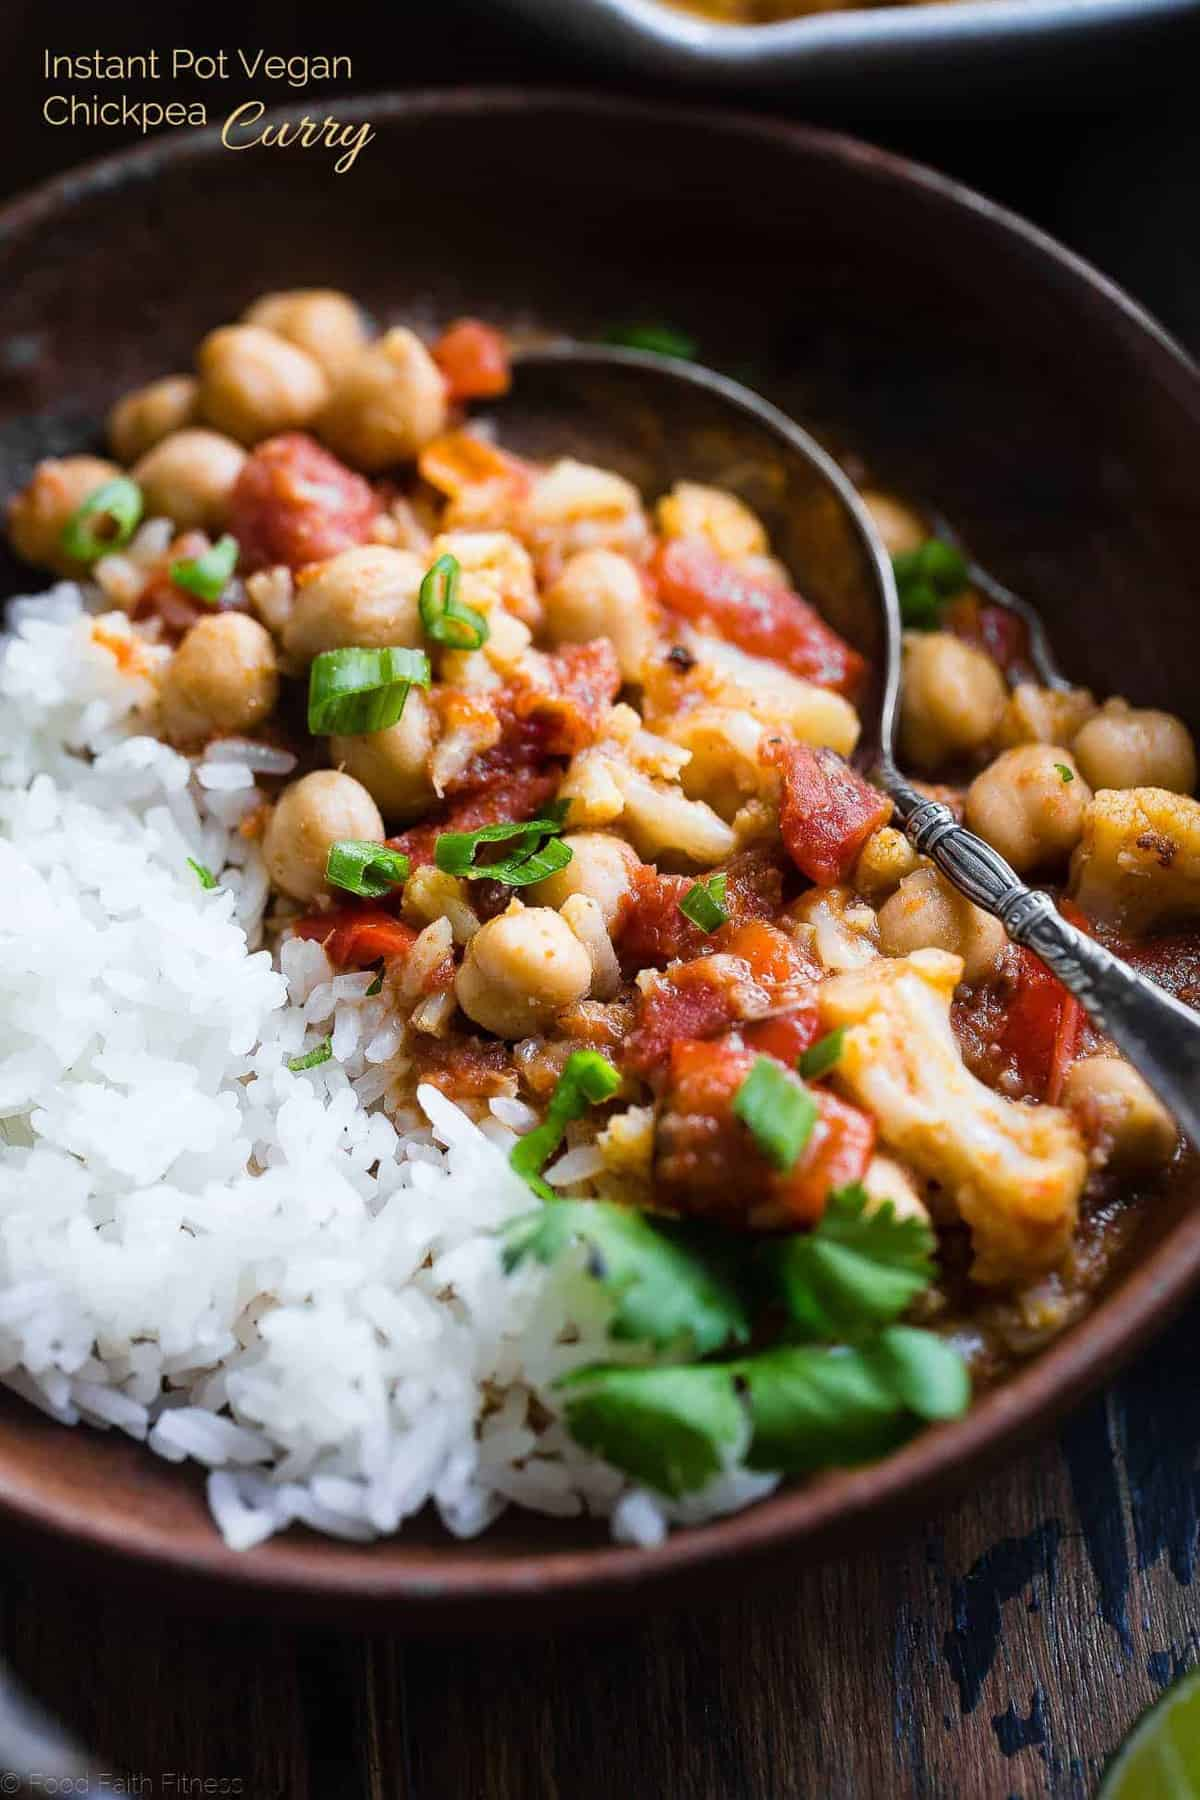 vegan chickpea curry image